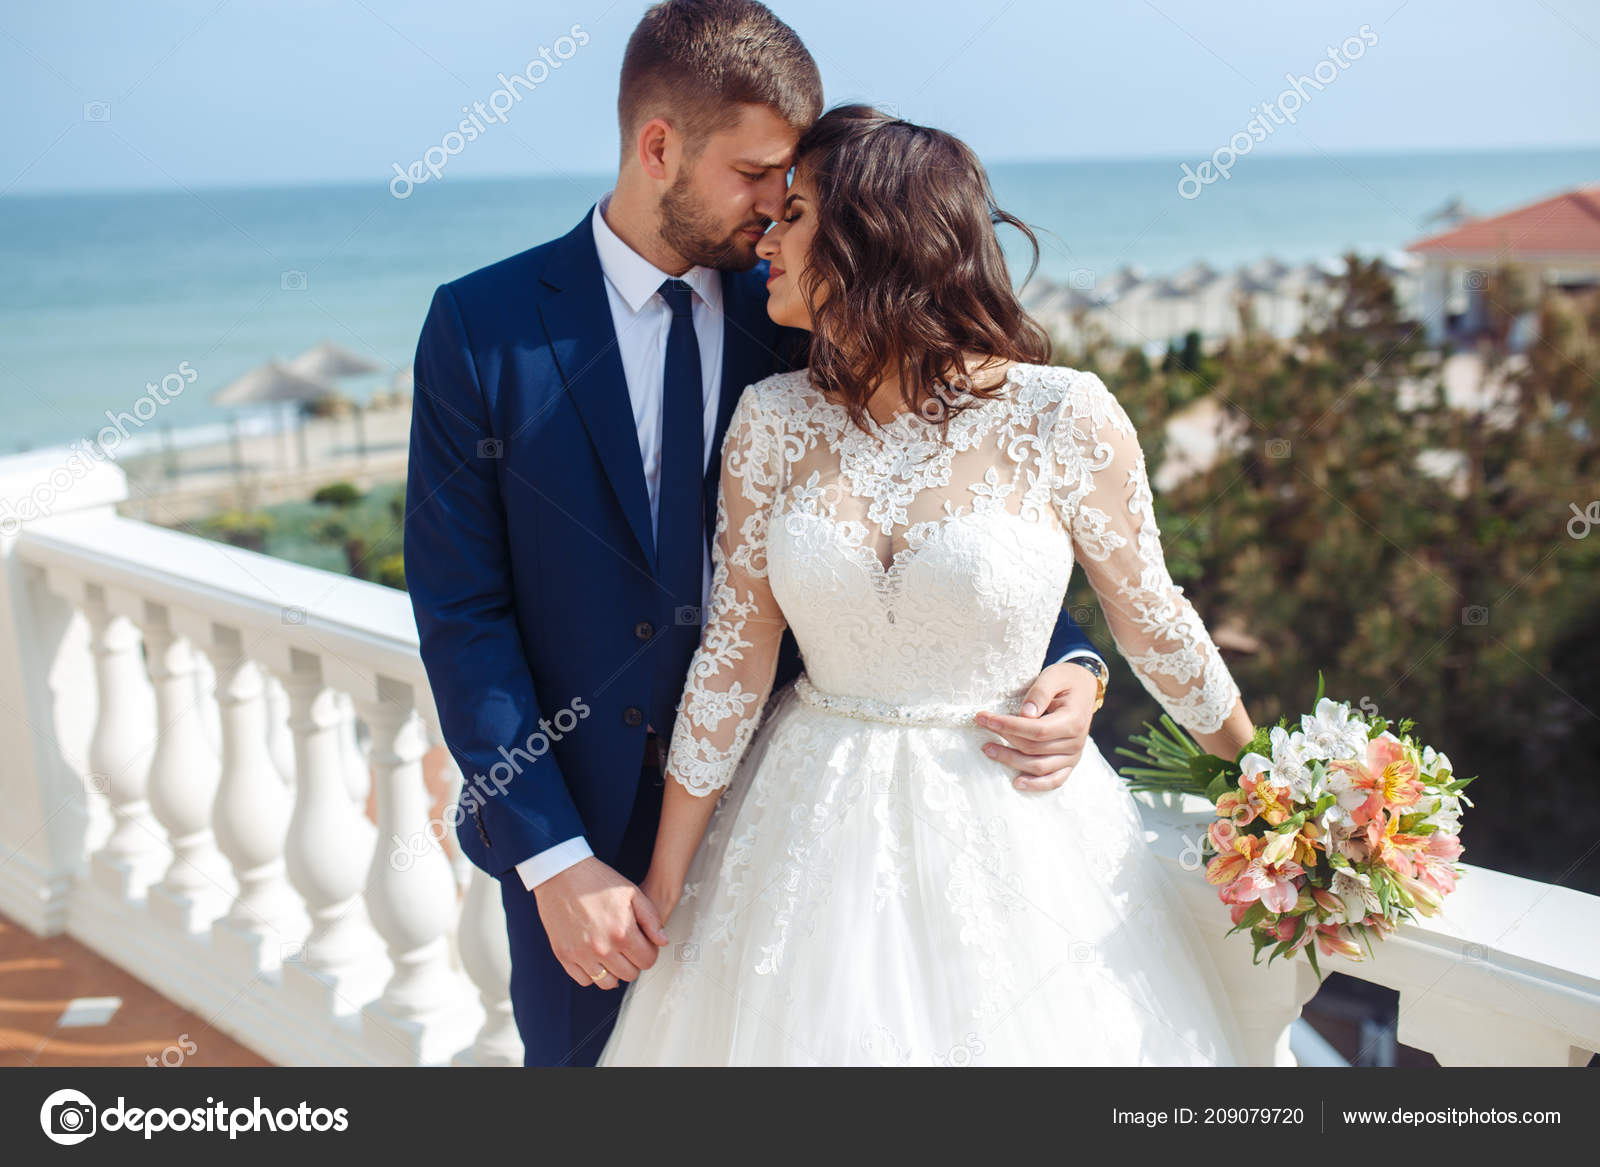 f8c60629fac Beautiful Bride and Groom enjoy each other on the background of the ocean.  happy romantic young couple celebrating their marriage.